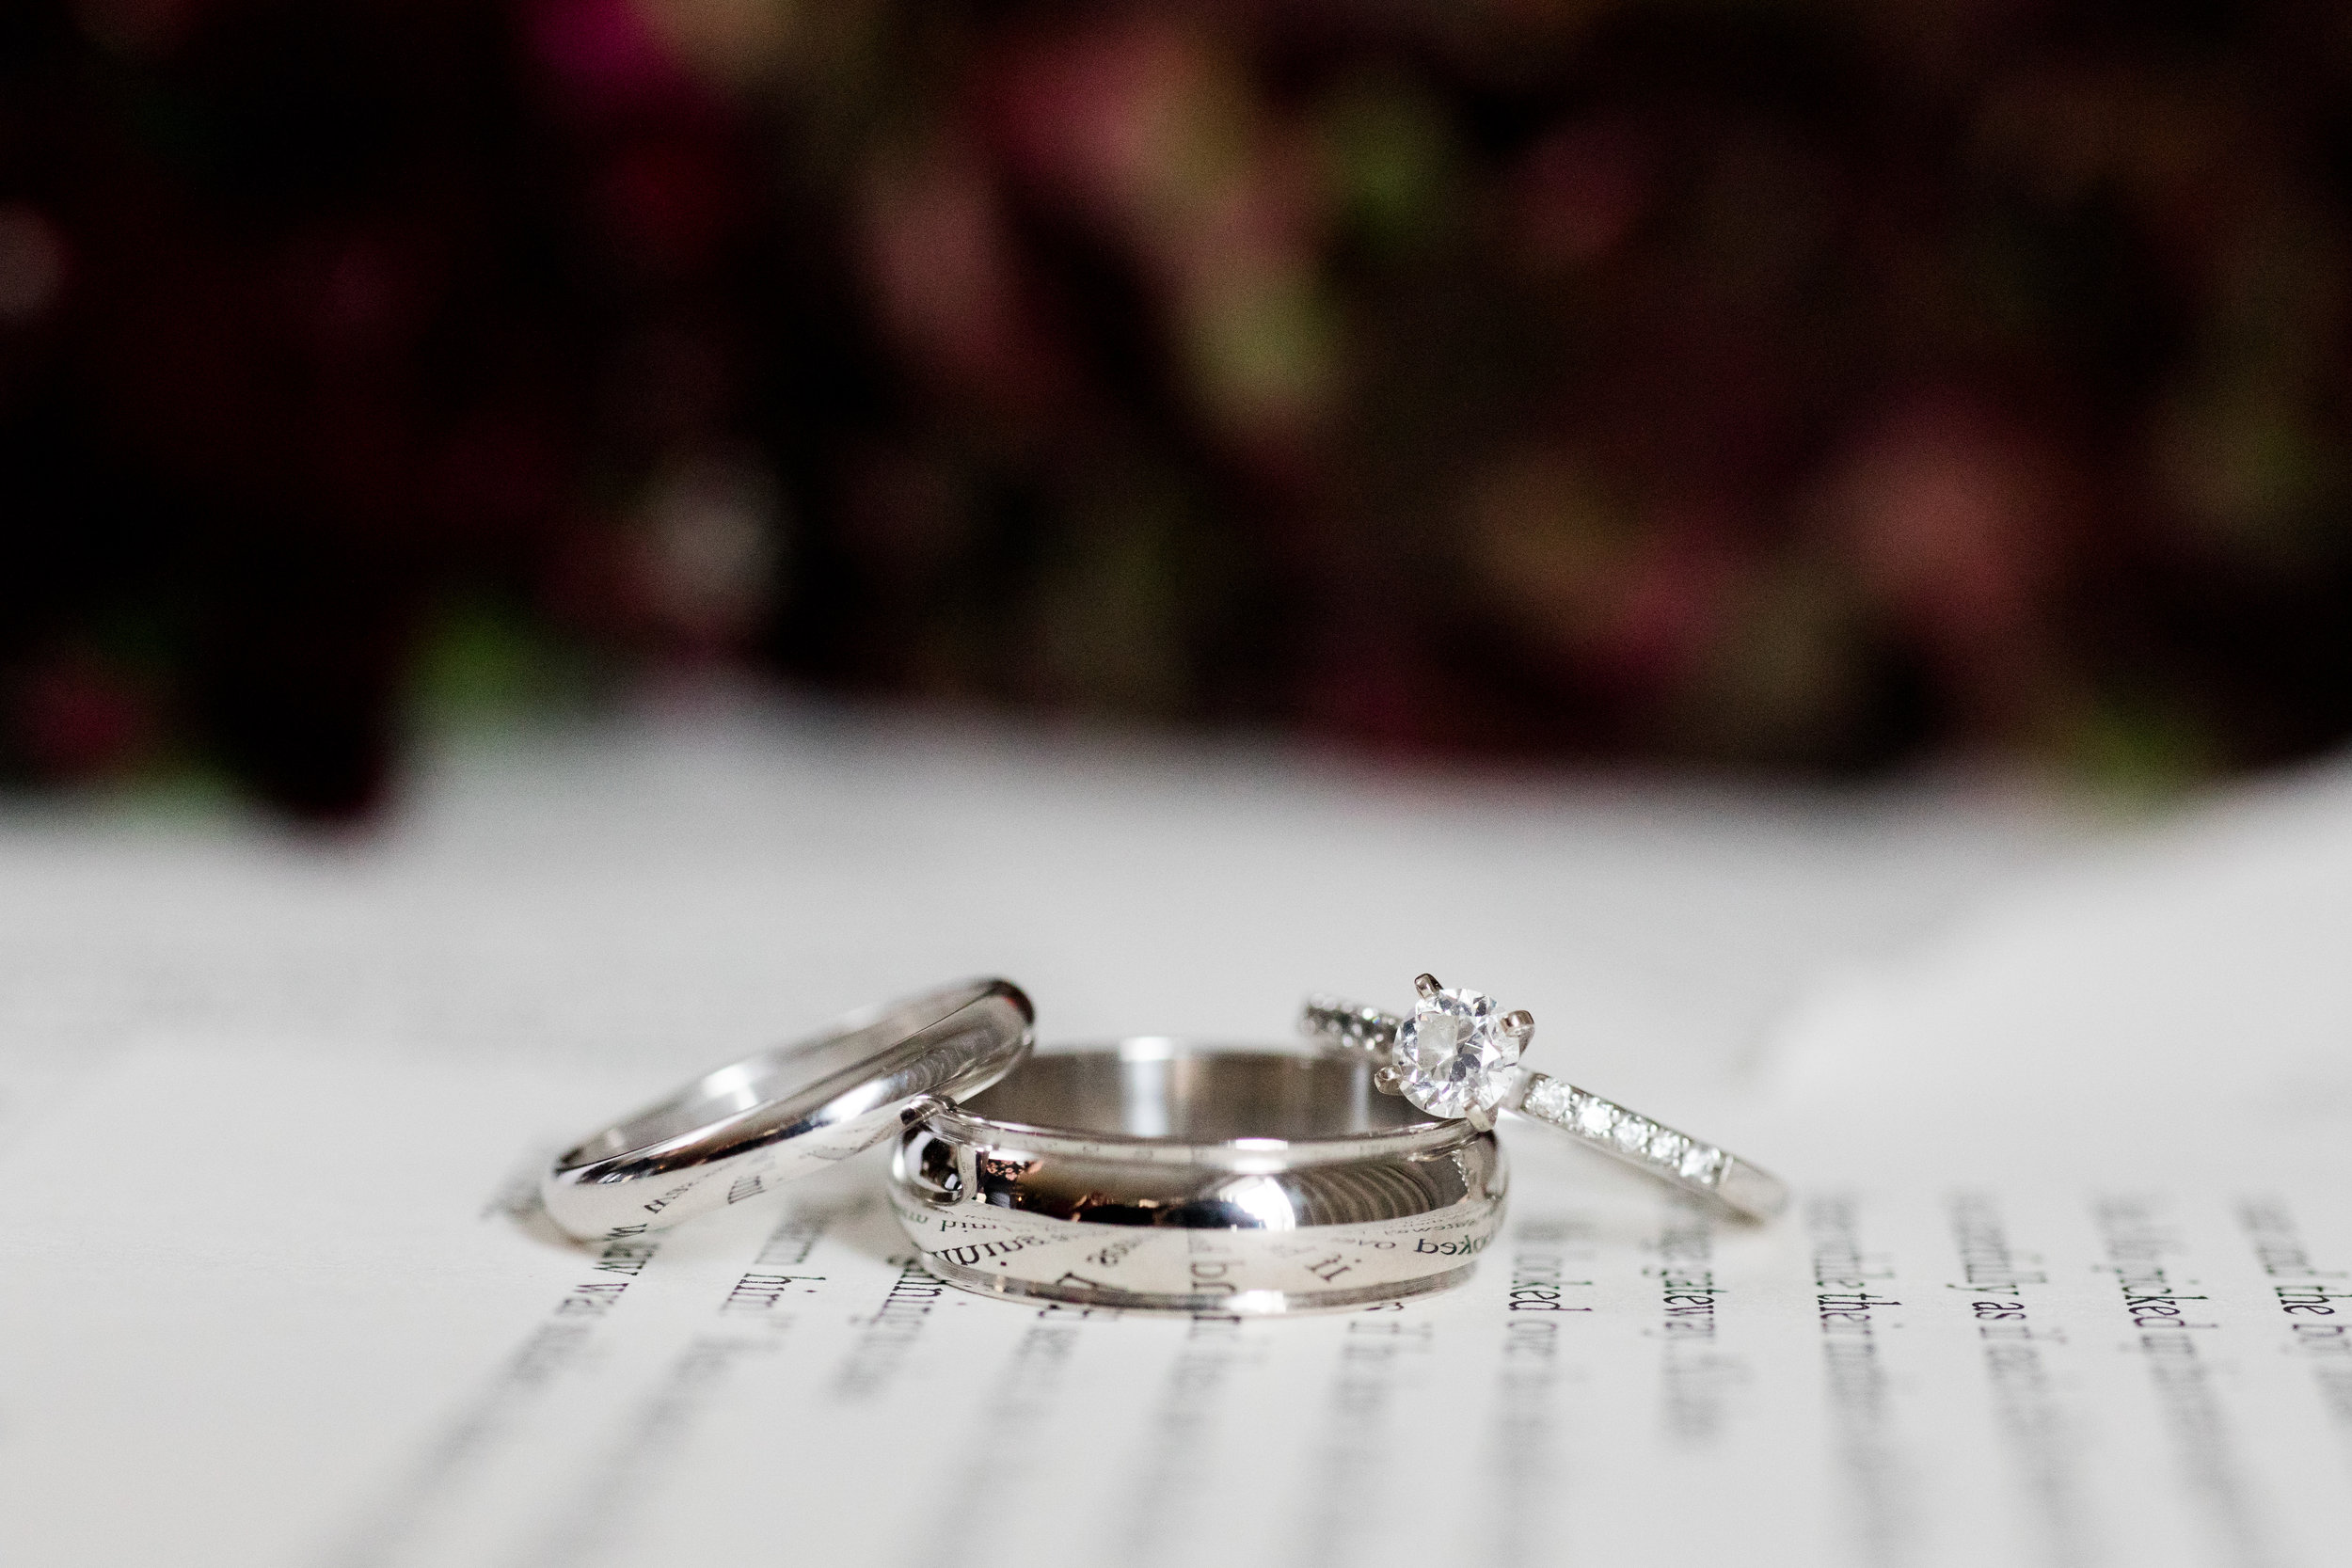 Wedding rings and engagement rings with white gold and diamonds on book page